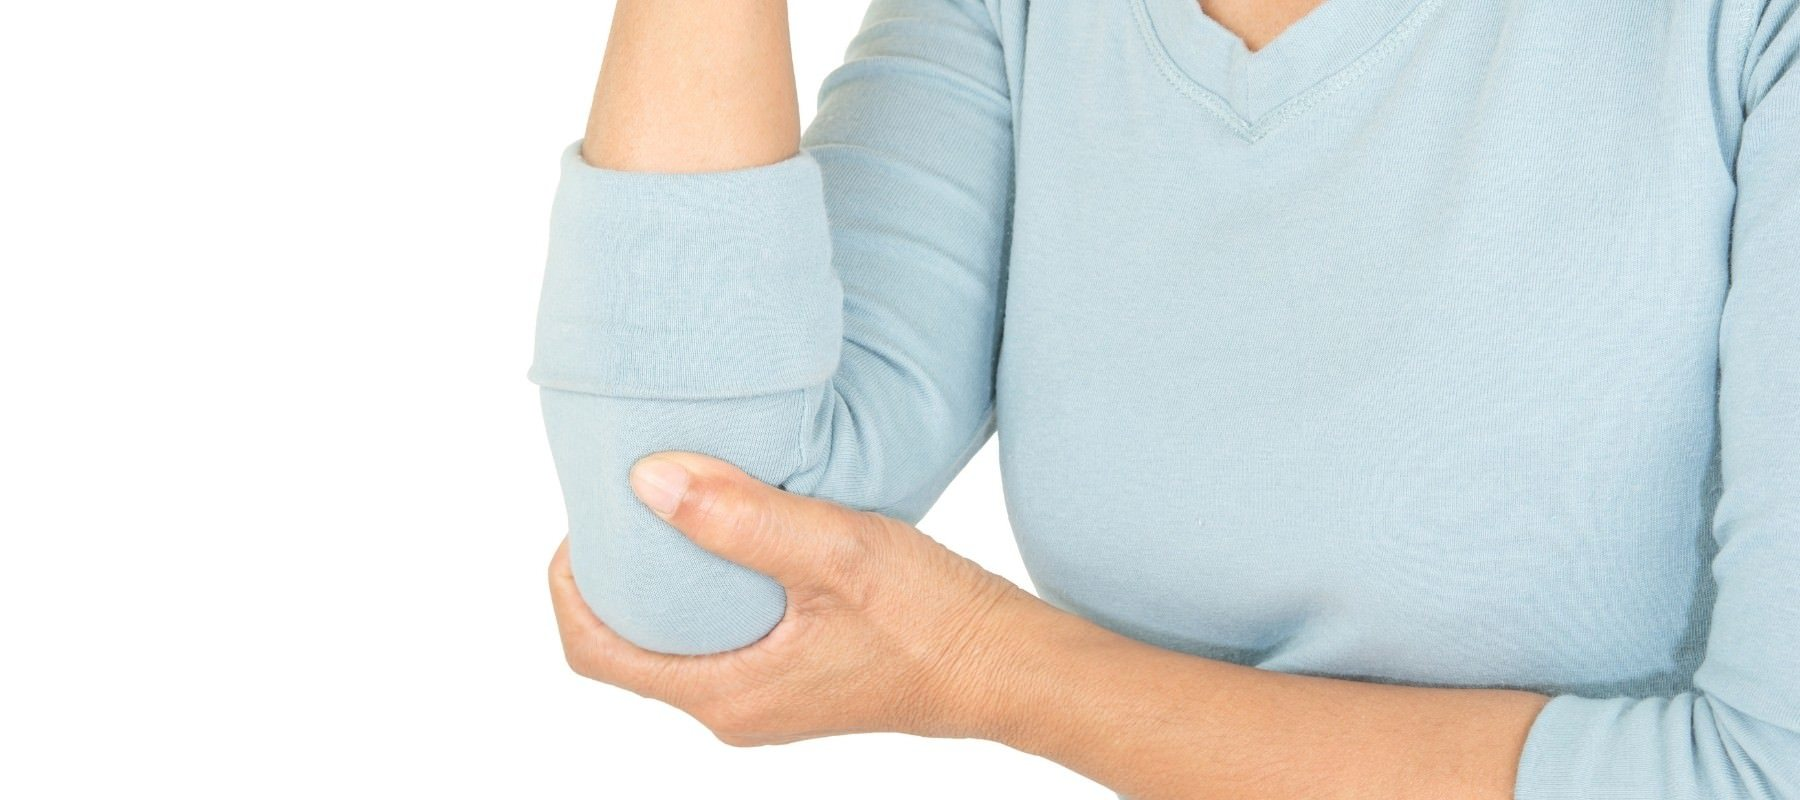 Arm Elbow Braces and sleeves For Golf or Tennis Elbow-Tynor Australia